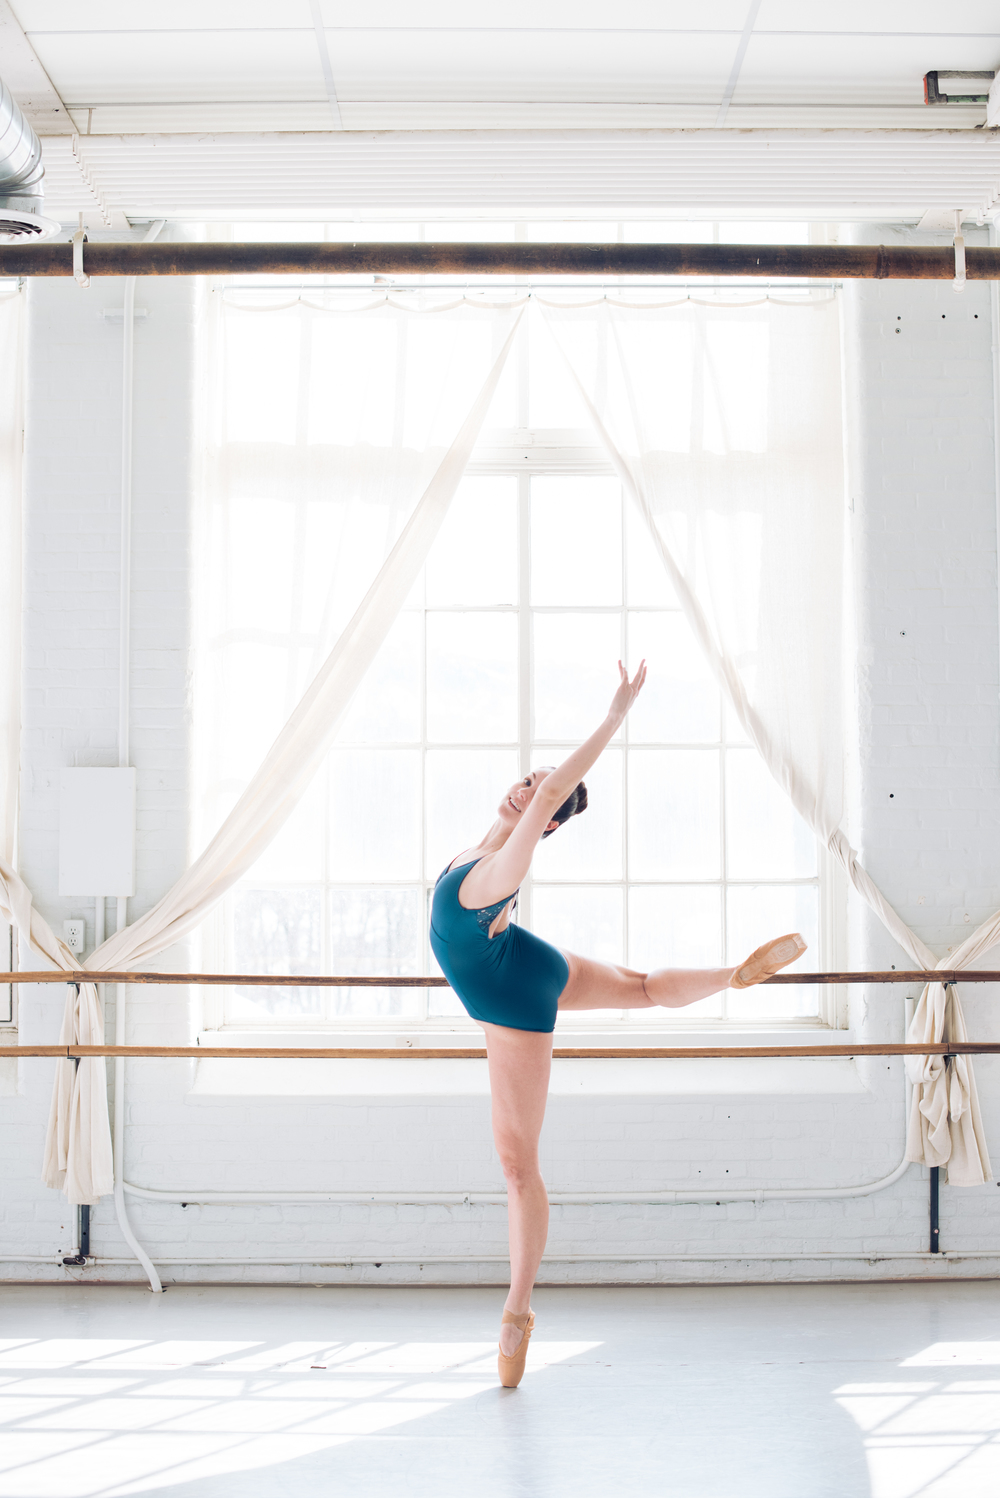 Ballet Photographer in Amherst Ma